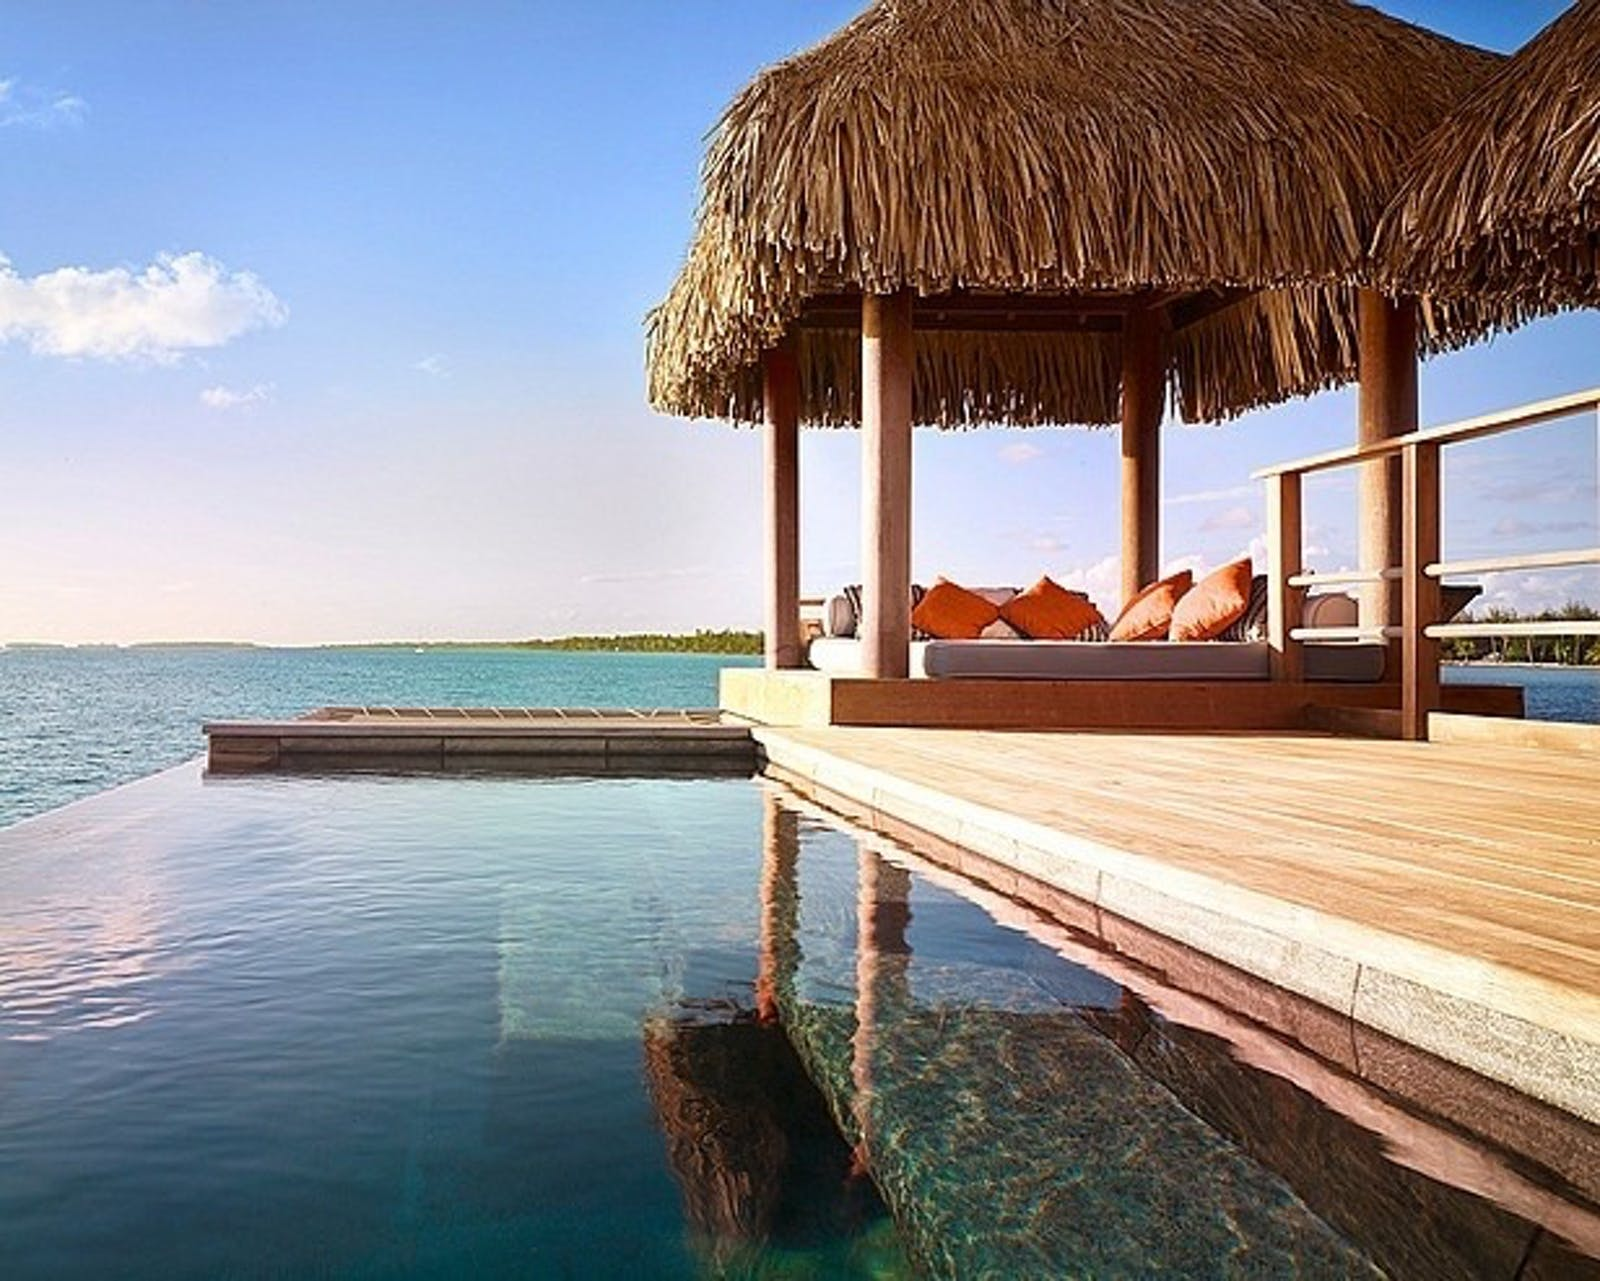 One of the plunge pools at Four Seasons Bora Bora Resort, French Polynesia